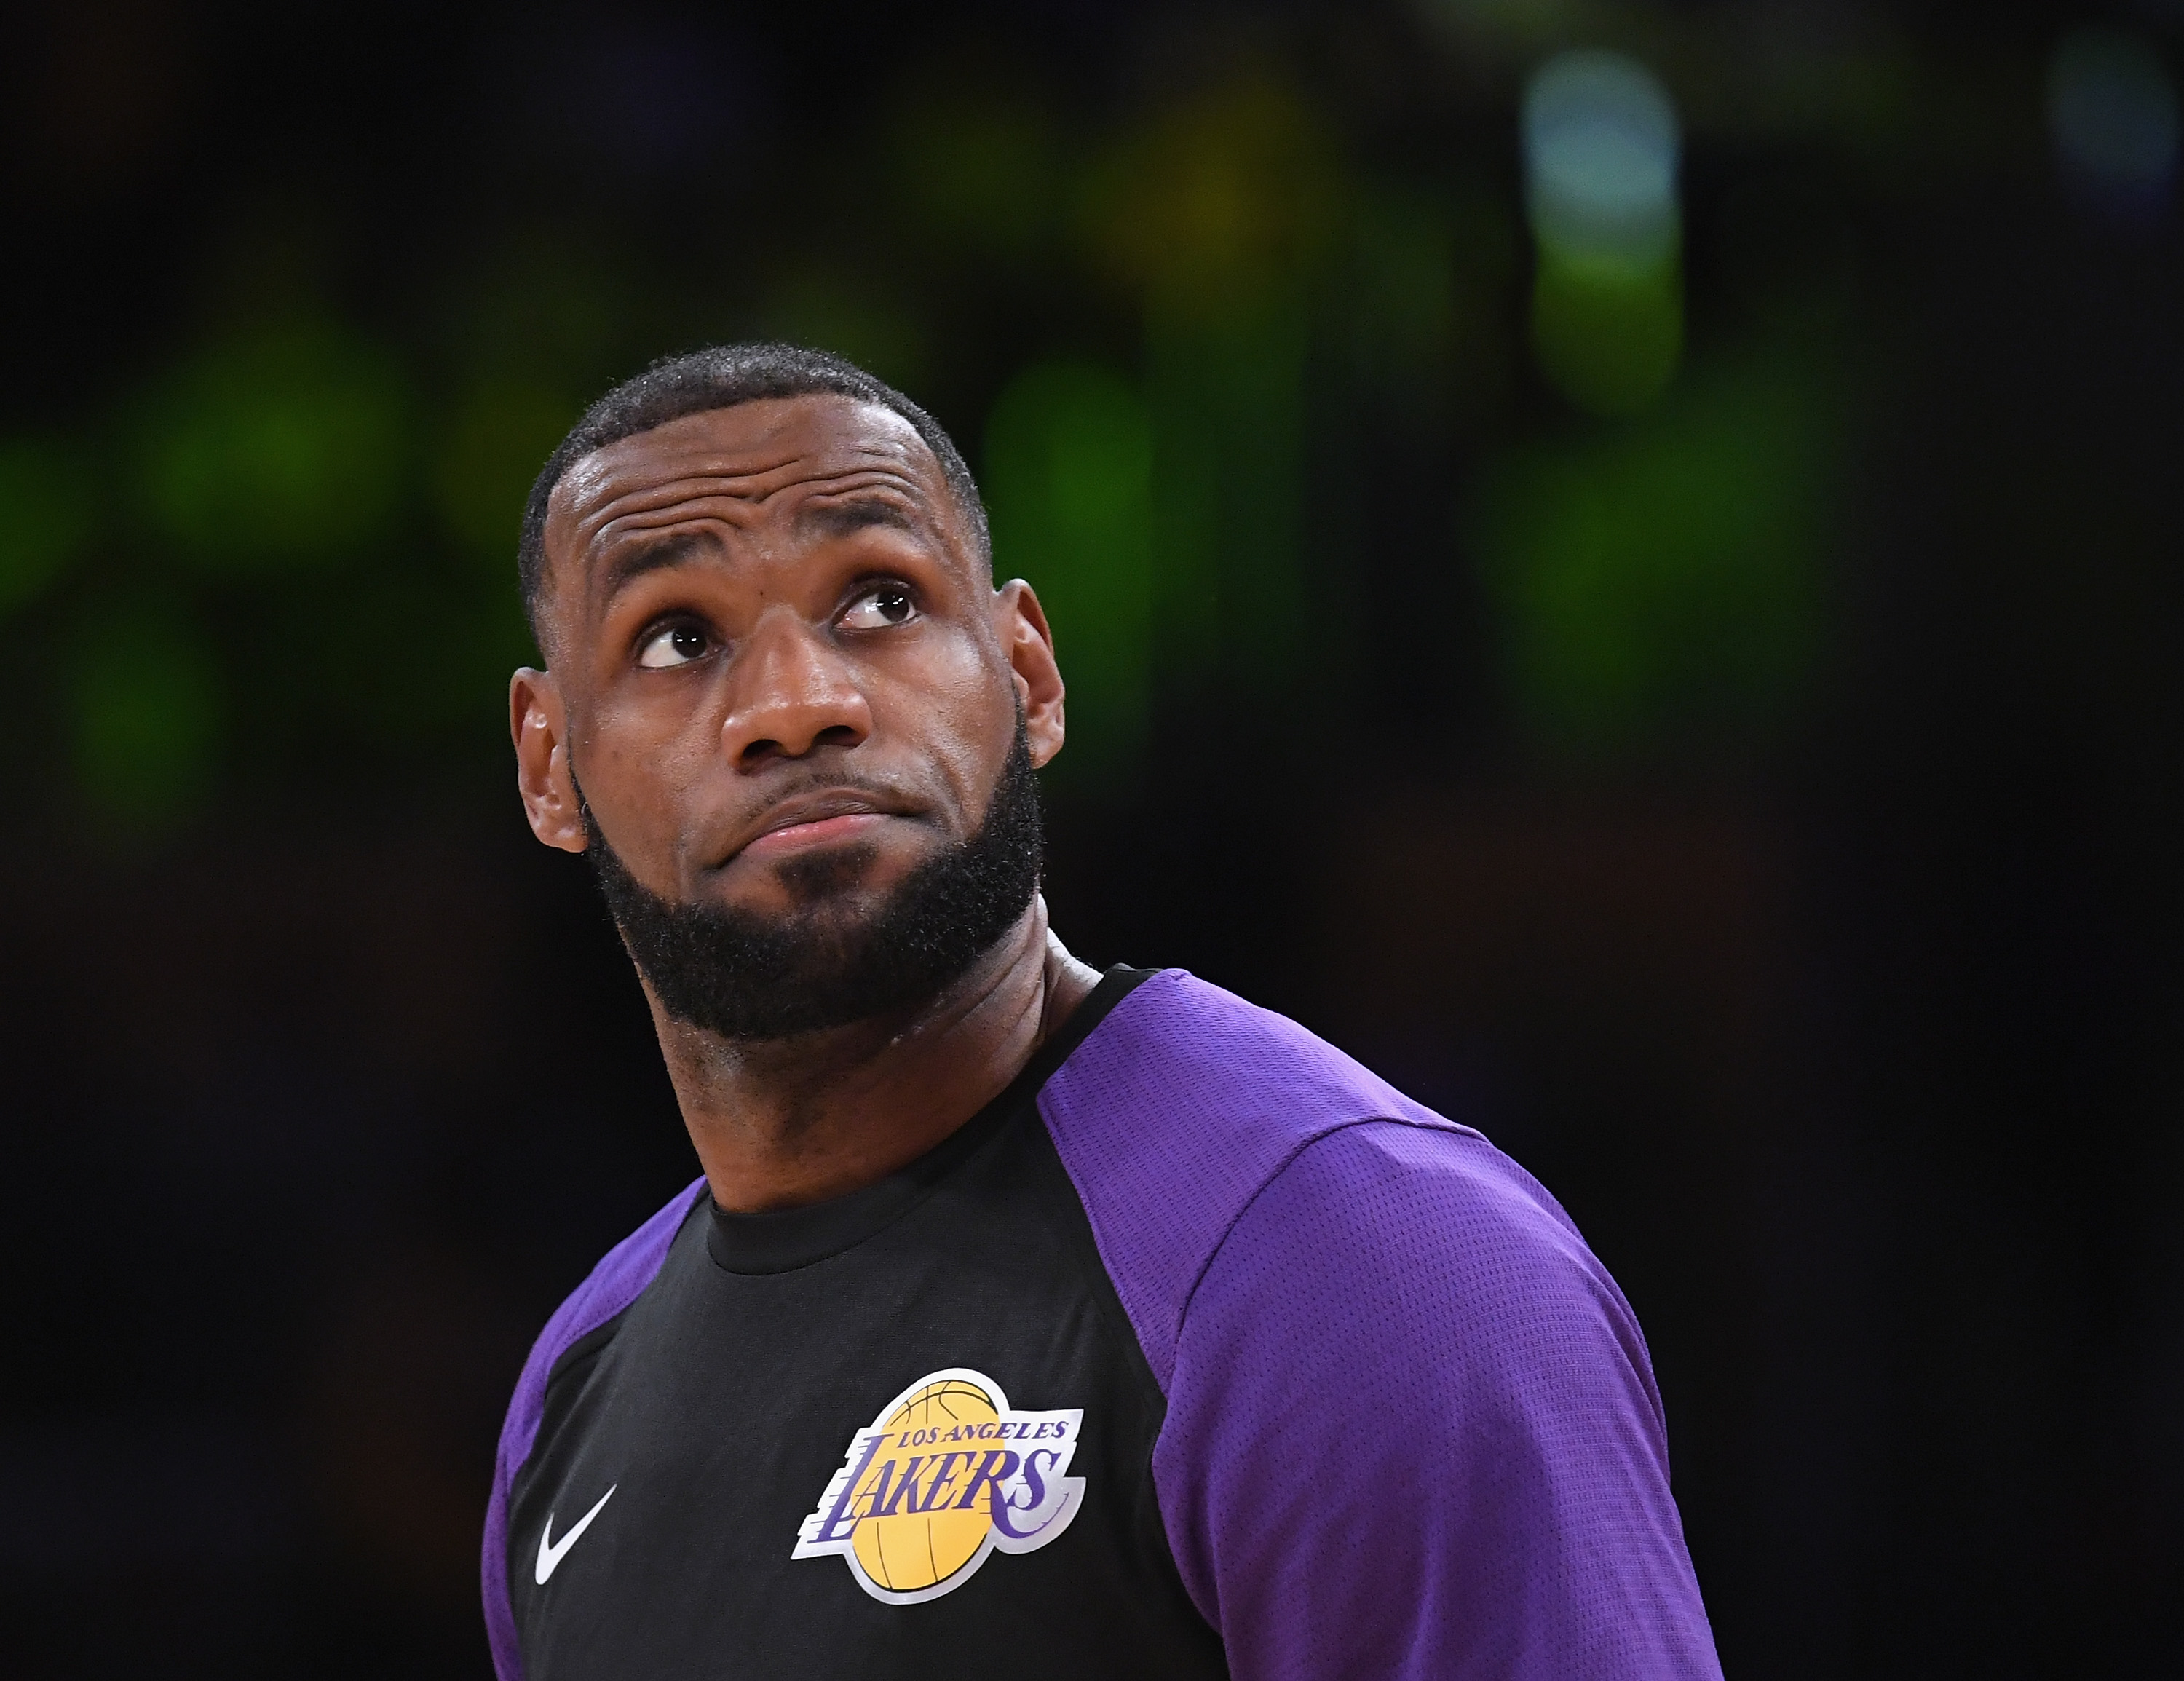 LeBron James looking on before the start of a Lakers game